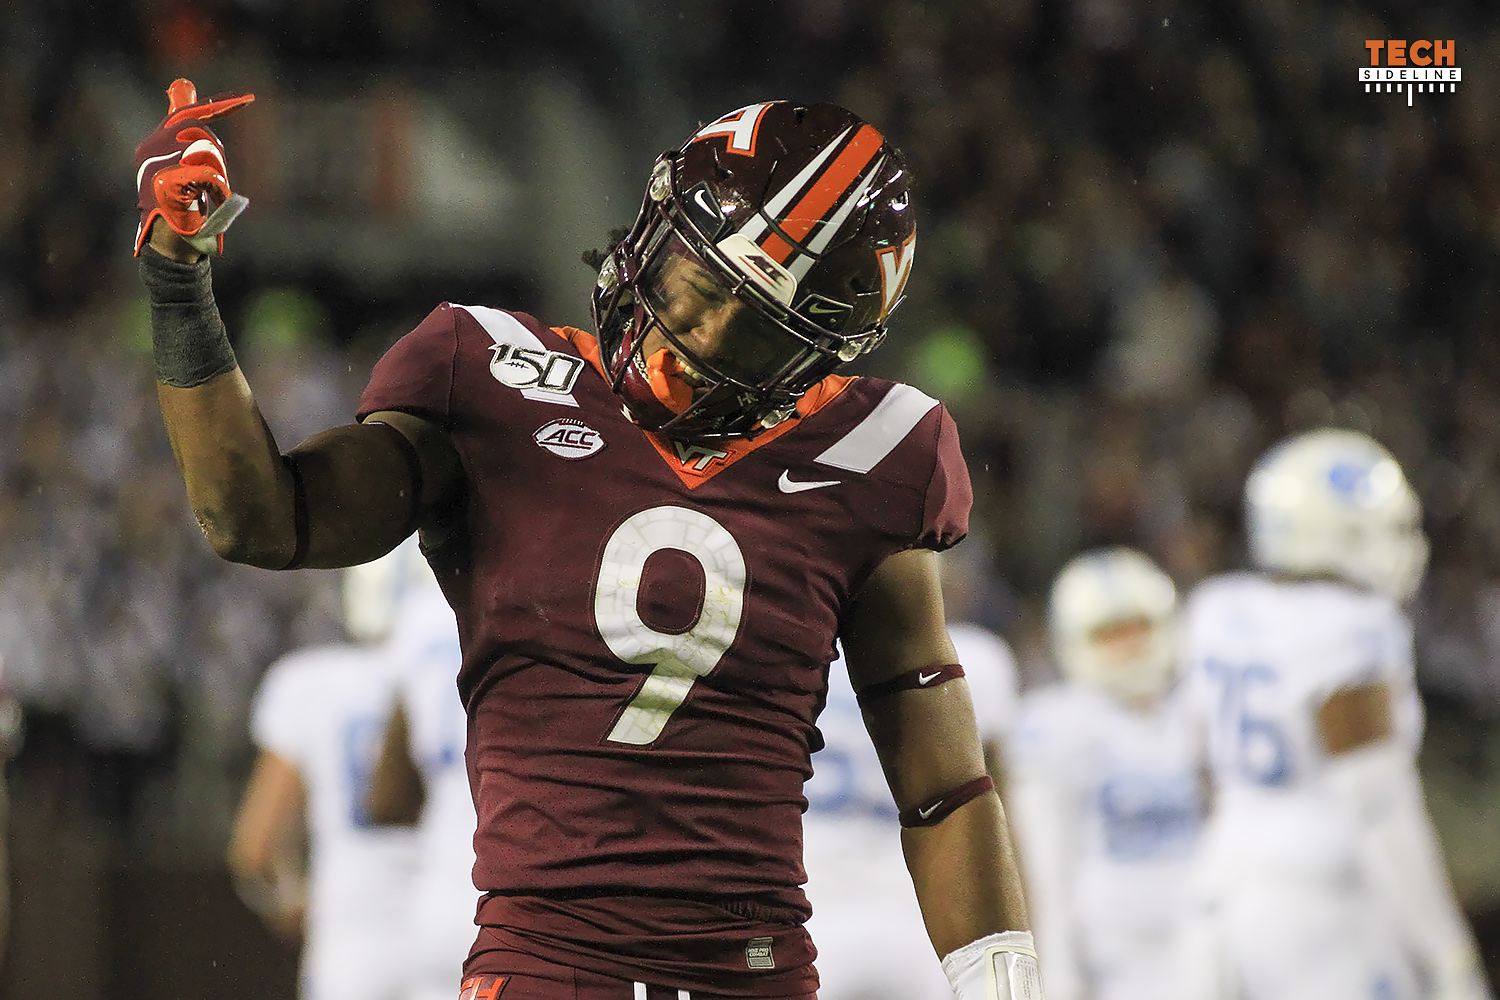 Virginia Tech Football Signs 19 Players To Letters Of Intent Techsideline Com